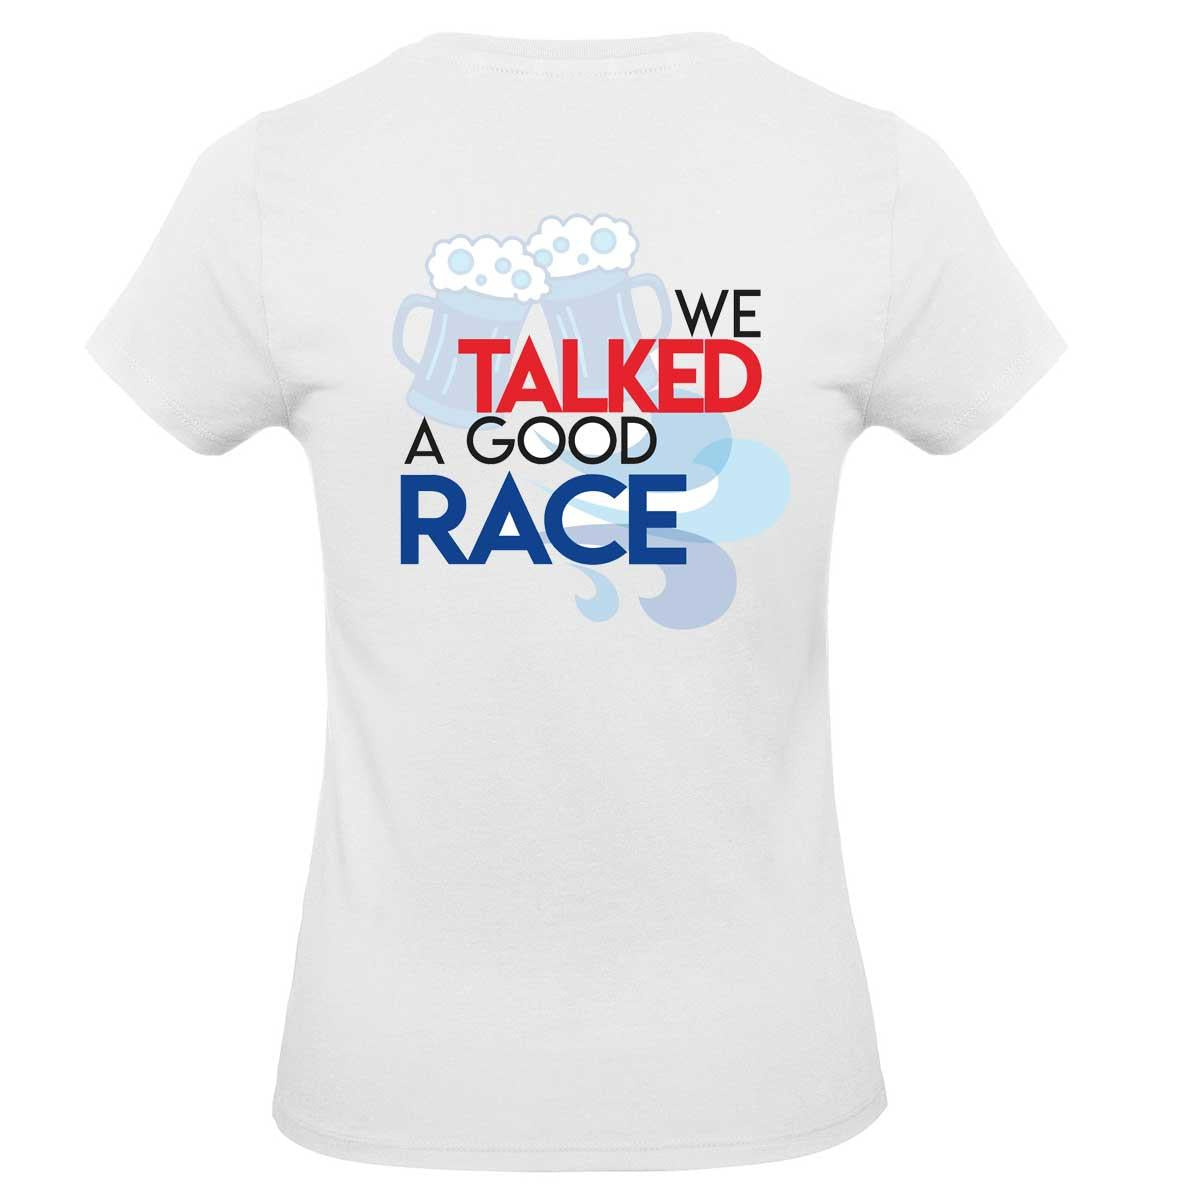 Womens T-Shirt - We Talked a Good Race